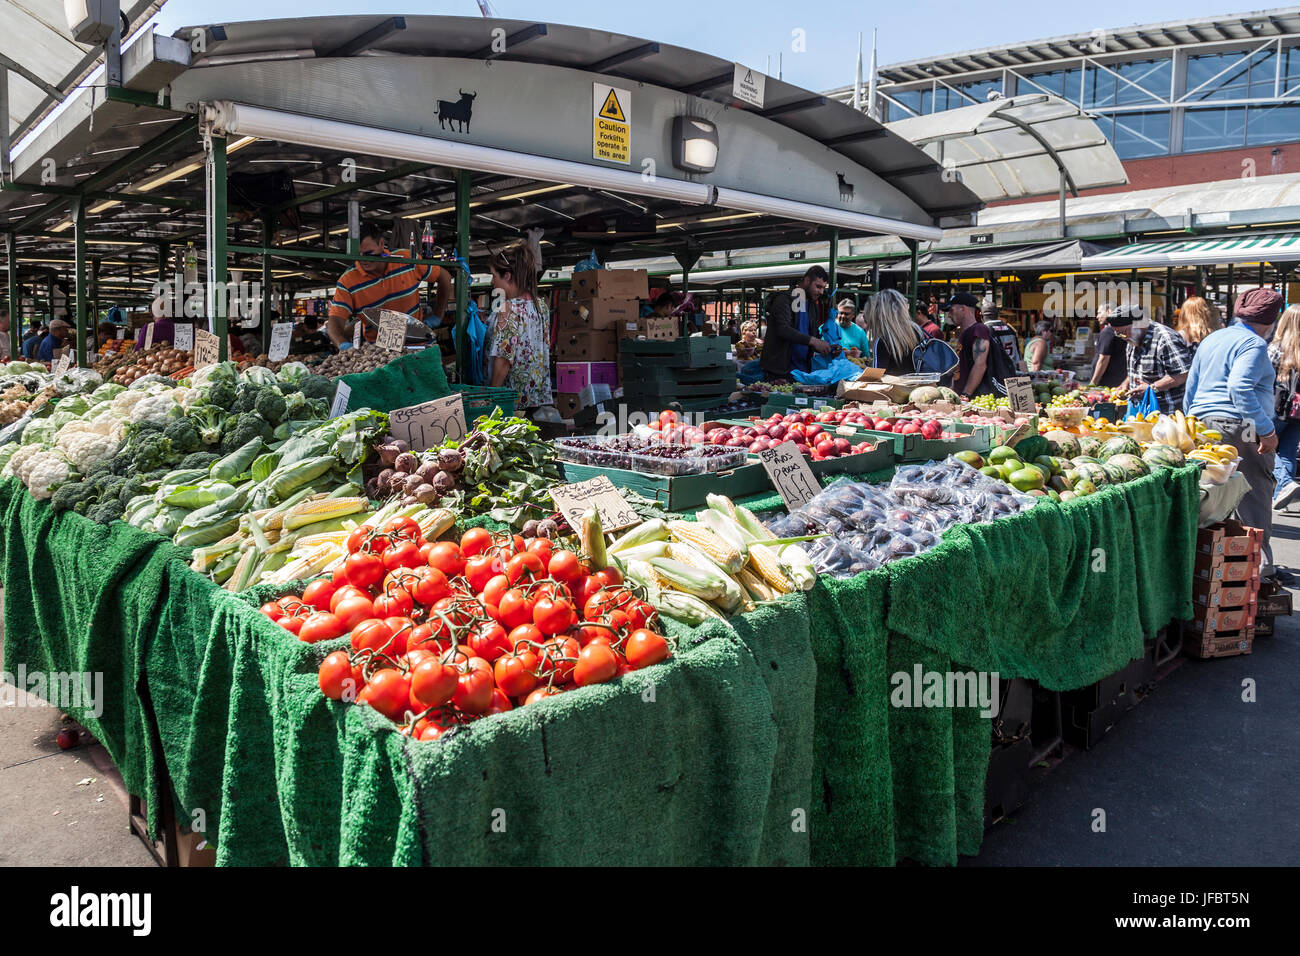 Fruit And Vegetable Stall In The Bullring Market In Central